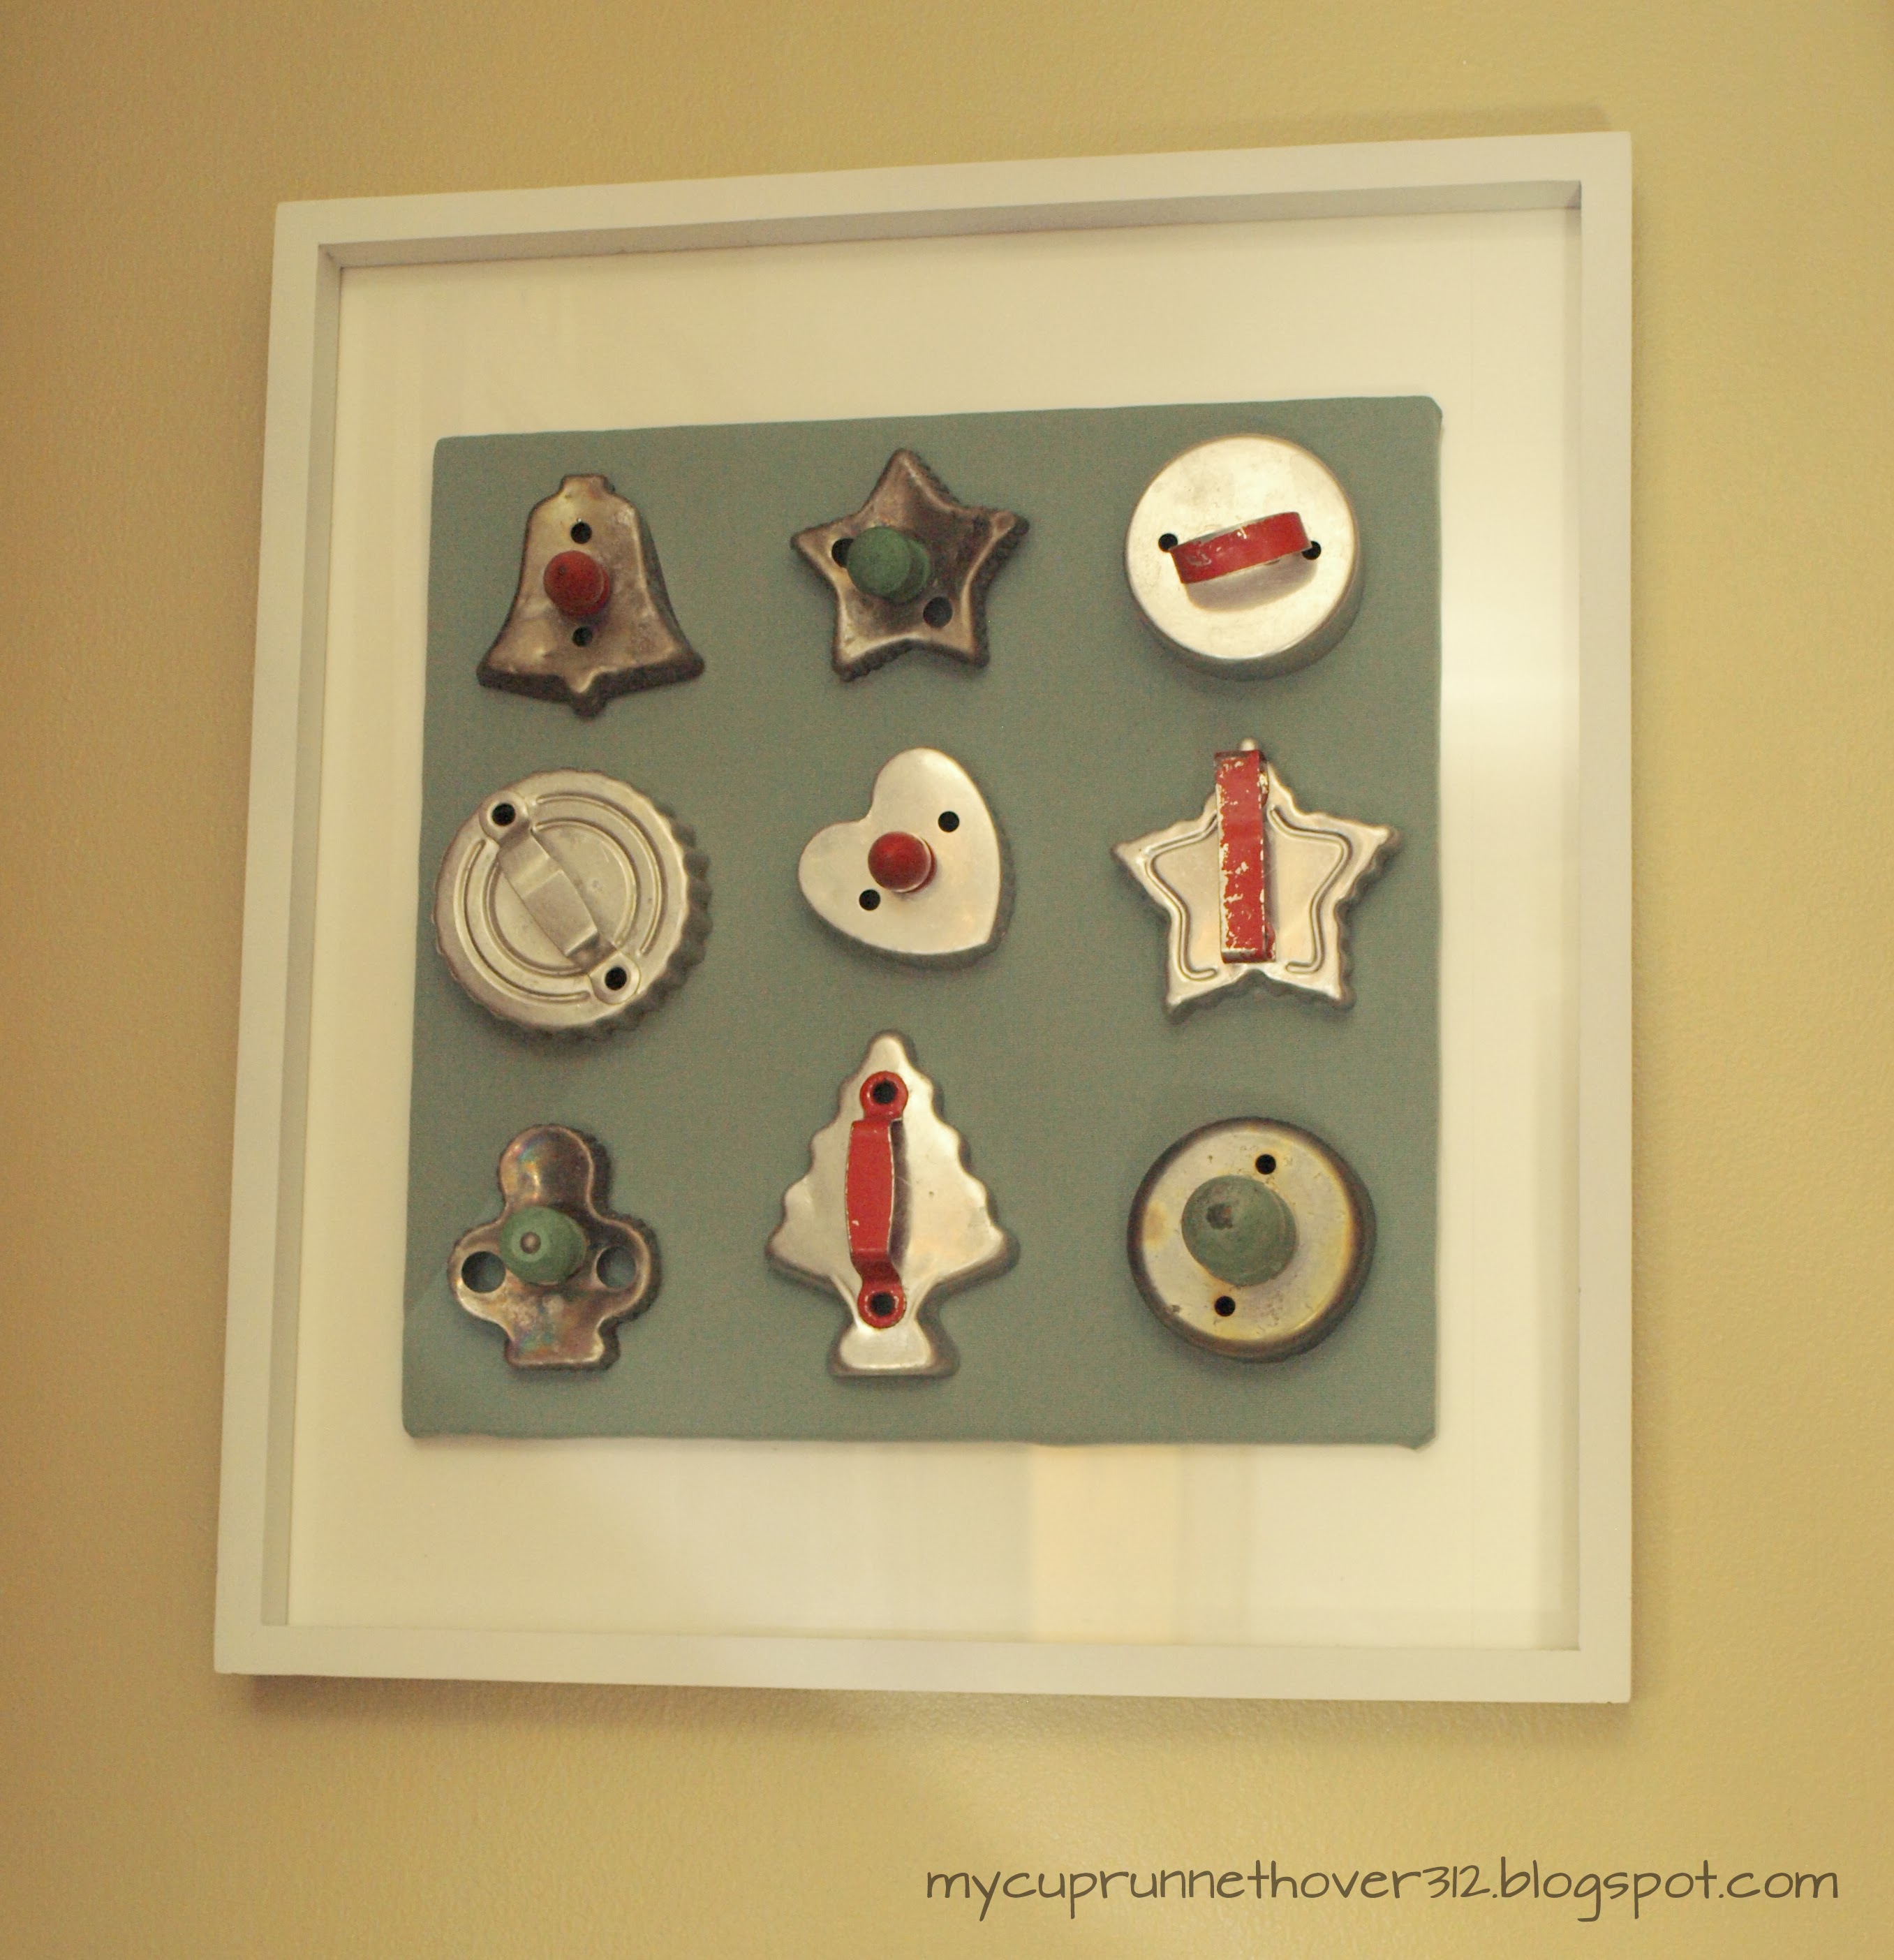 FRAMED COOKIE CUTTERS - MyCupRunnethOverBlog